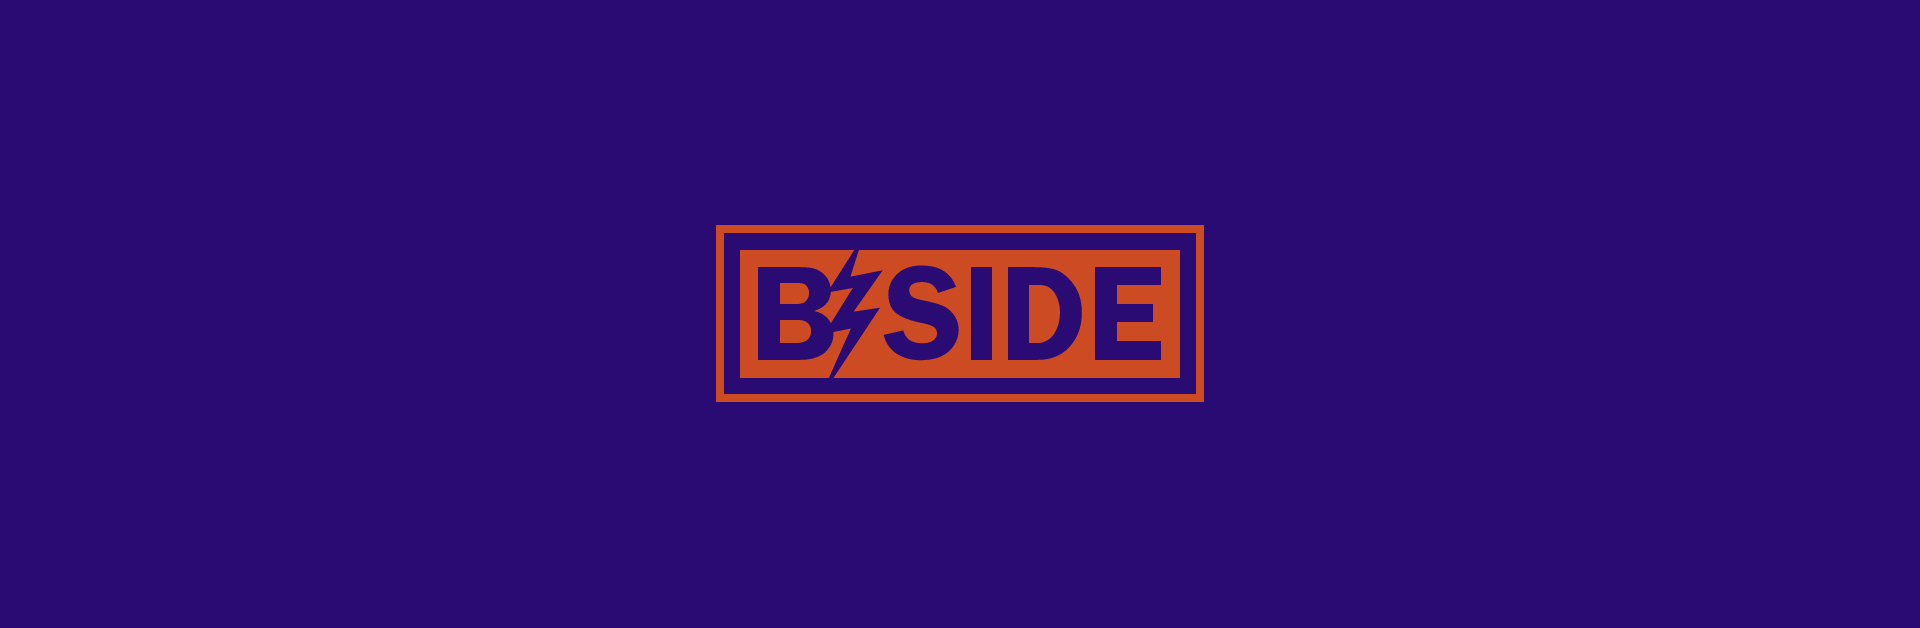 Logo de l'application mobile B-side